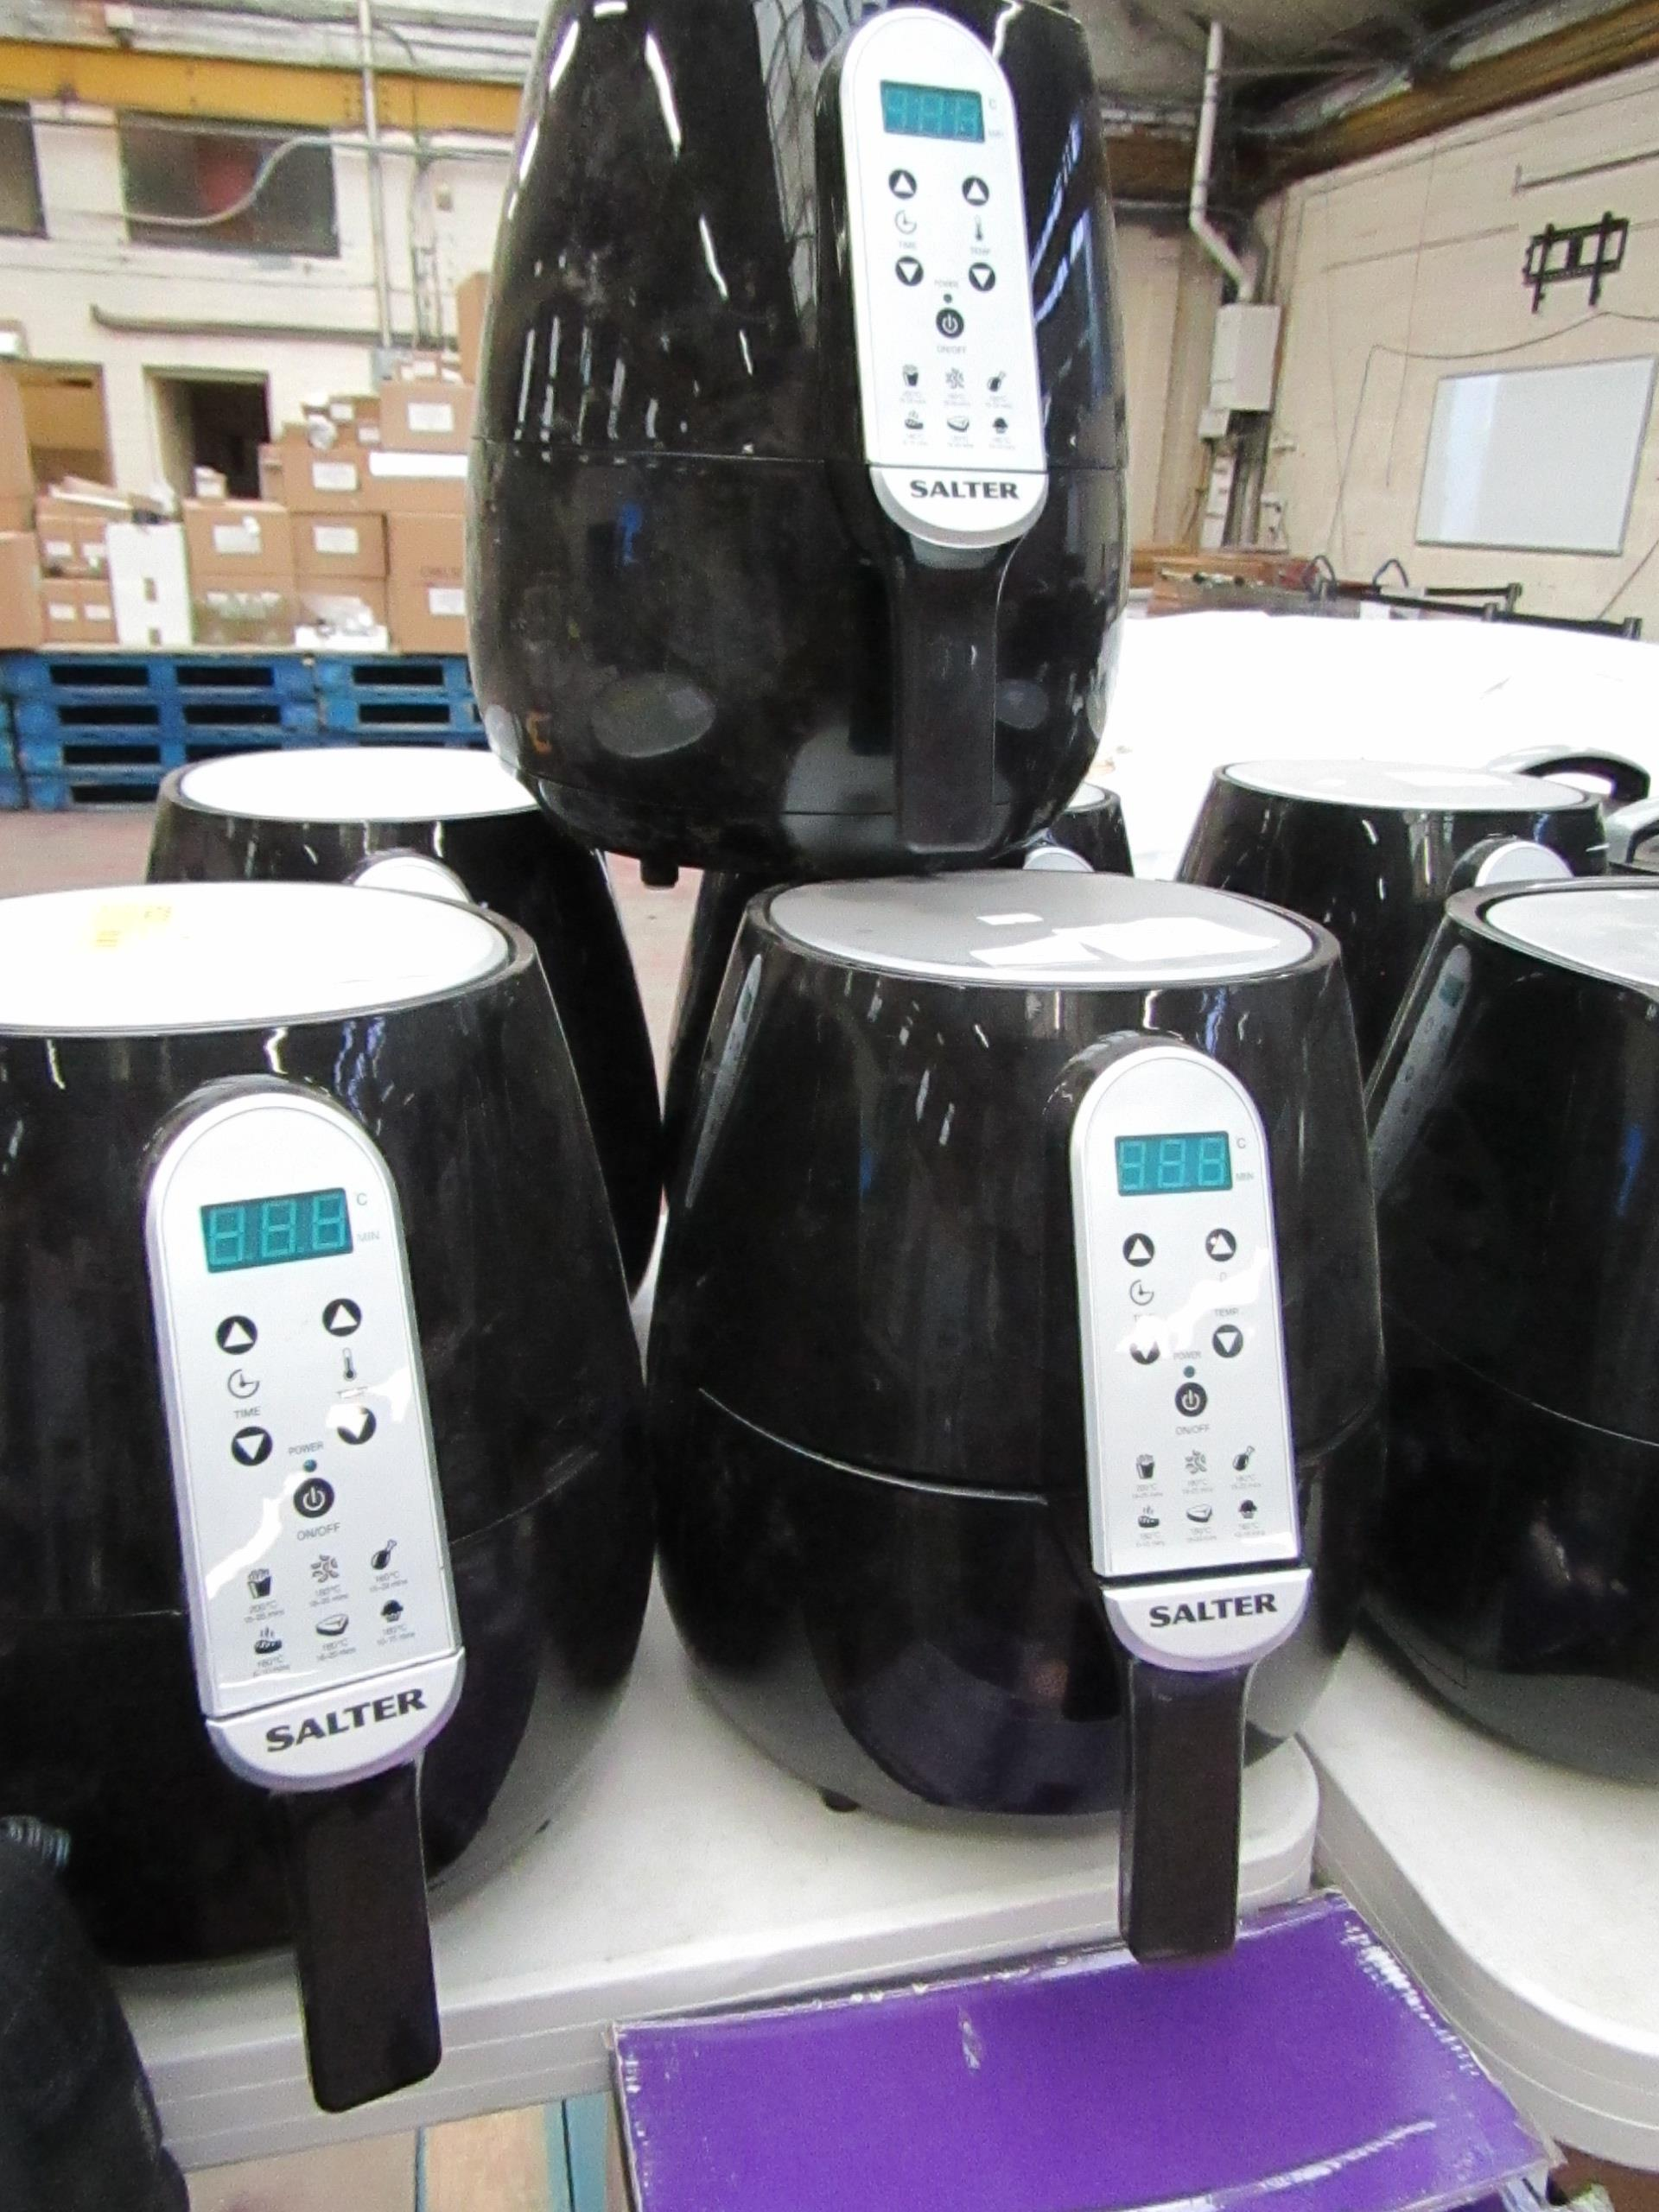 Lot 24 - 6x Salter hot air fryers, all tested working but have various cracks.